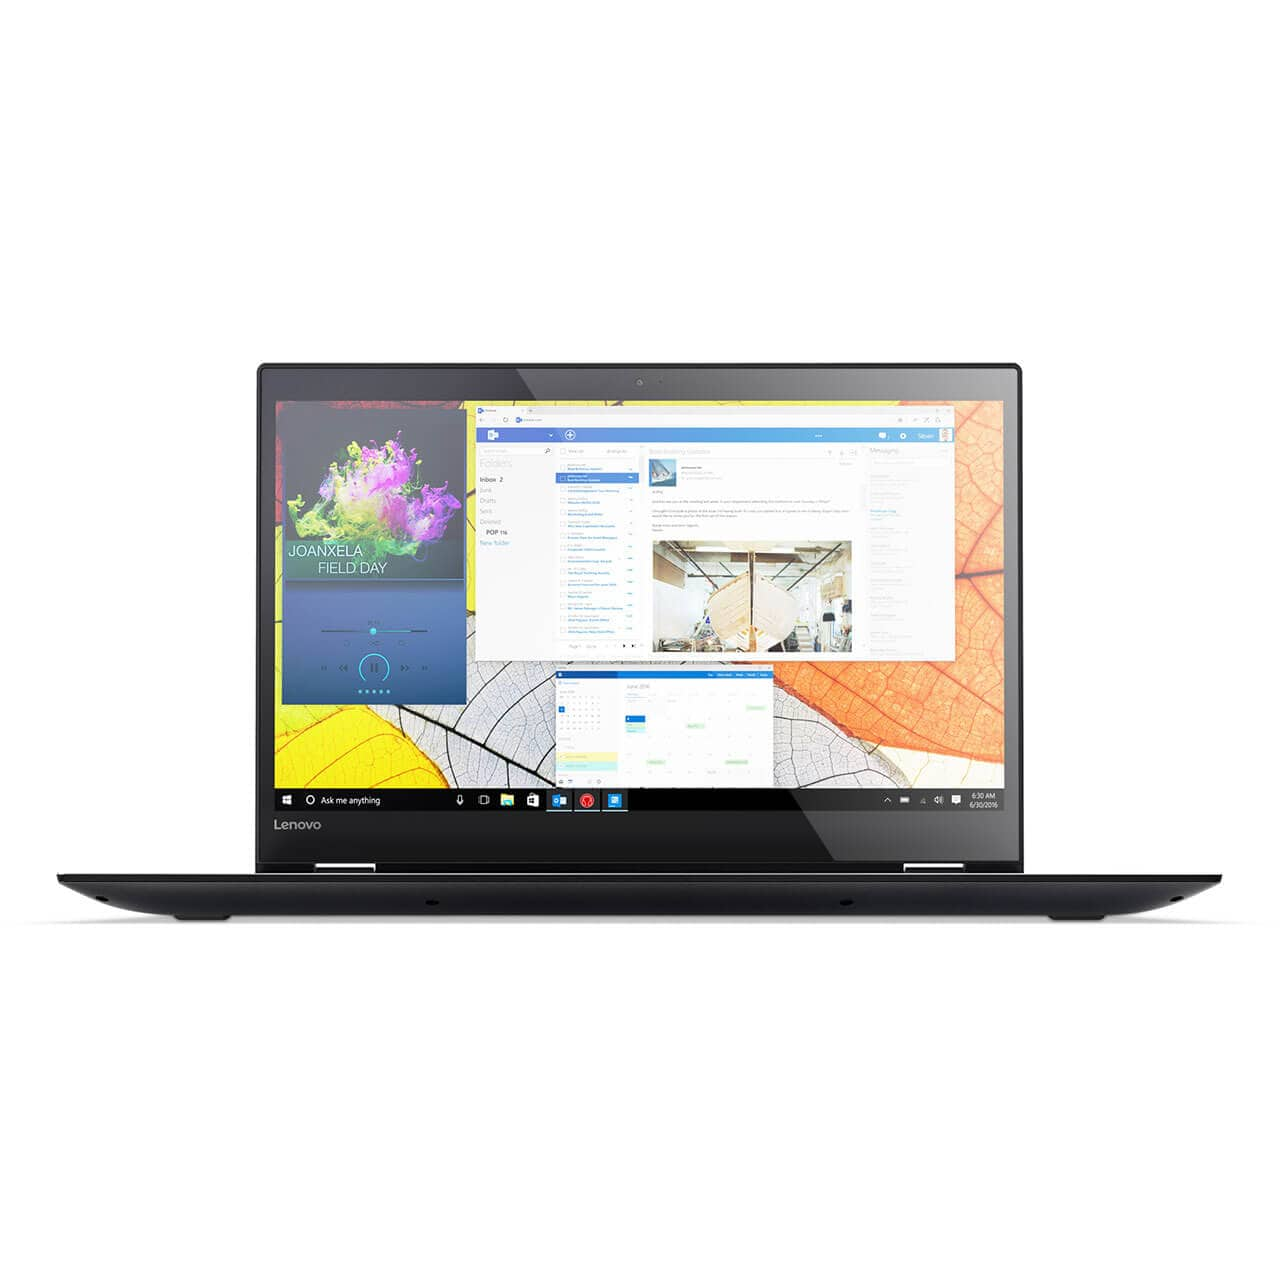 "Lenovo Flex 15, 15.6"", i5-8250U, 8 GB RAM, 500GB 5400 RPM, Win 10 Home 64 0"